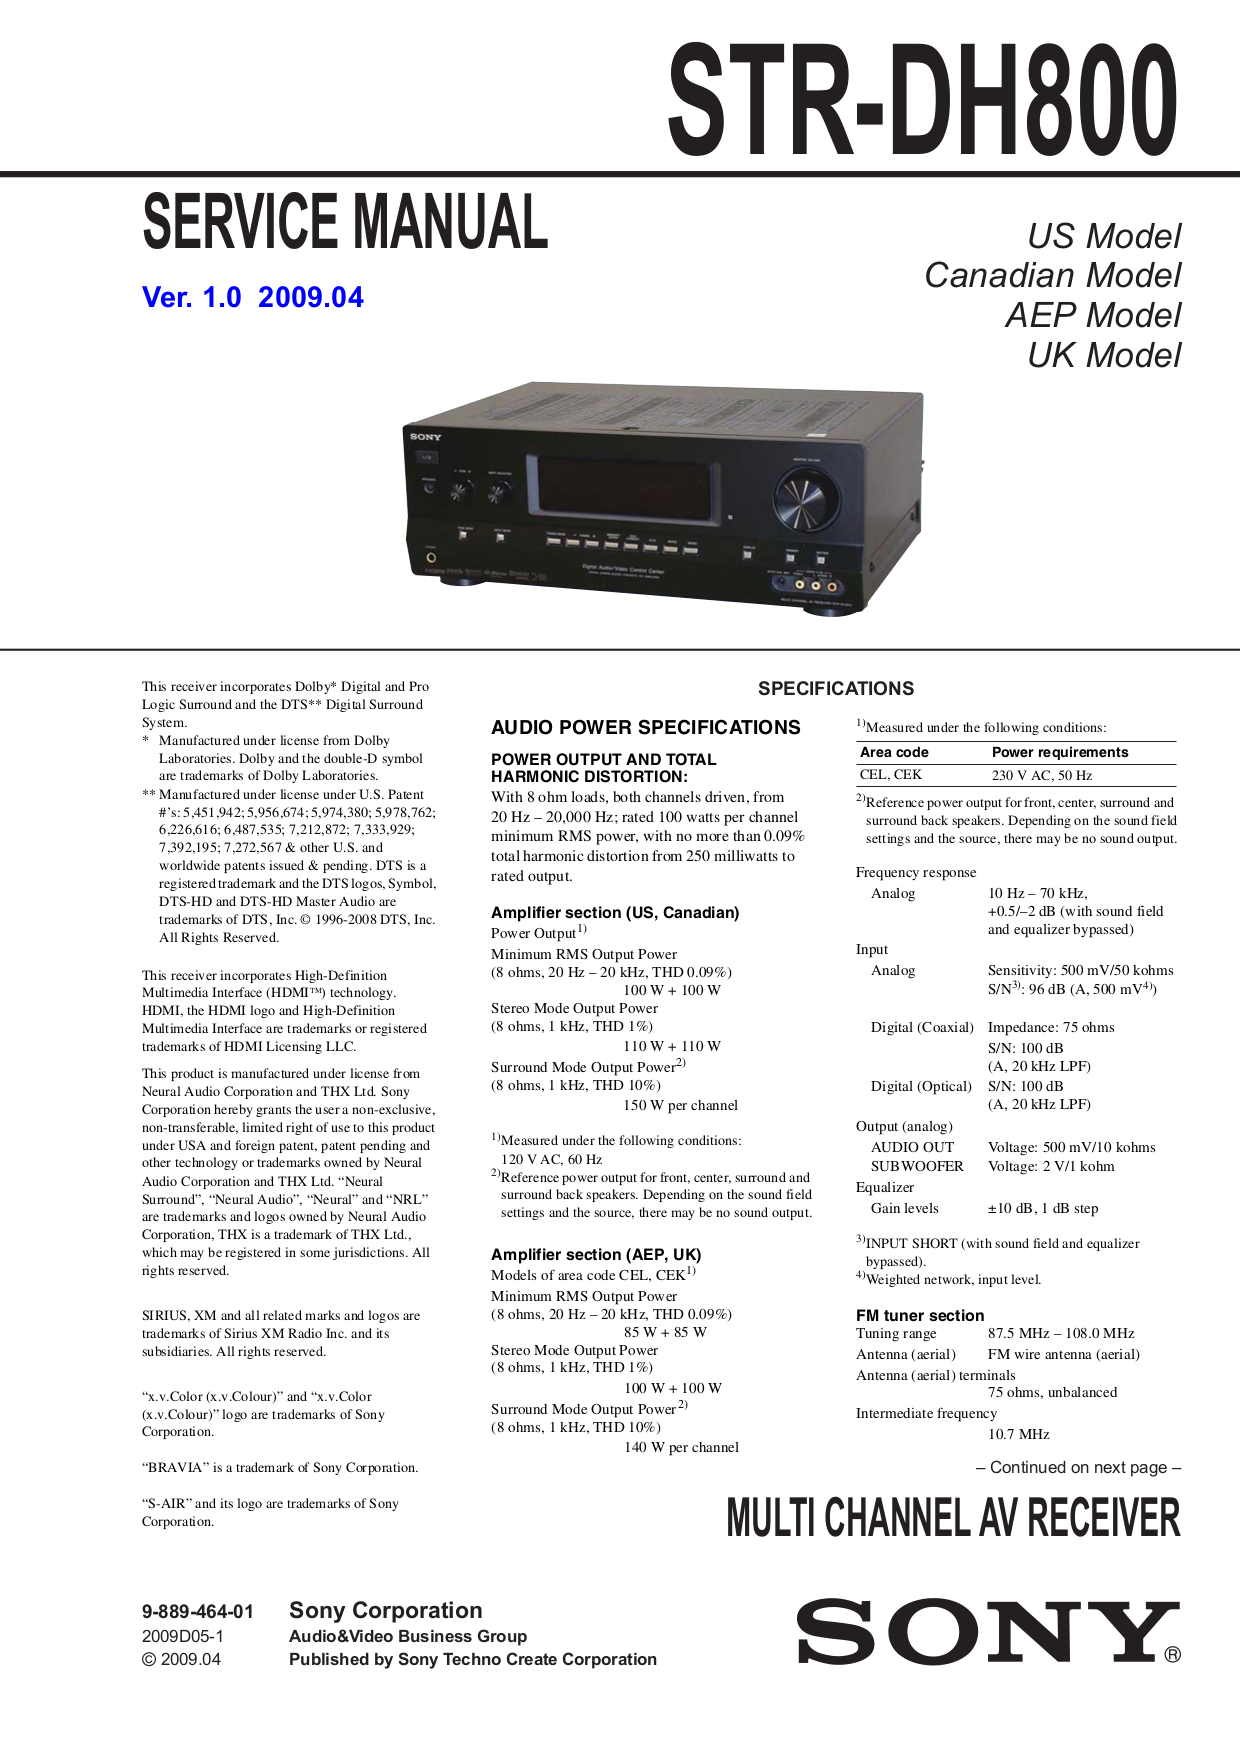 download free pdf for sony str dh800 receiver manual rh umlib com sony str dh800 manual pdf Sony Receiver STR -DH830